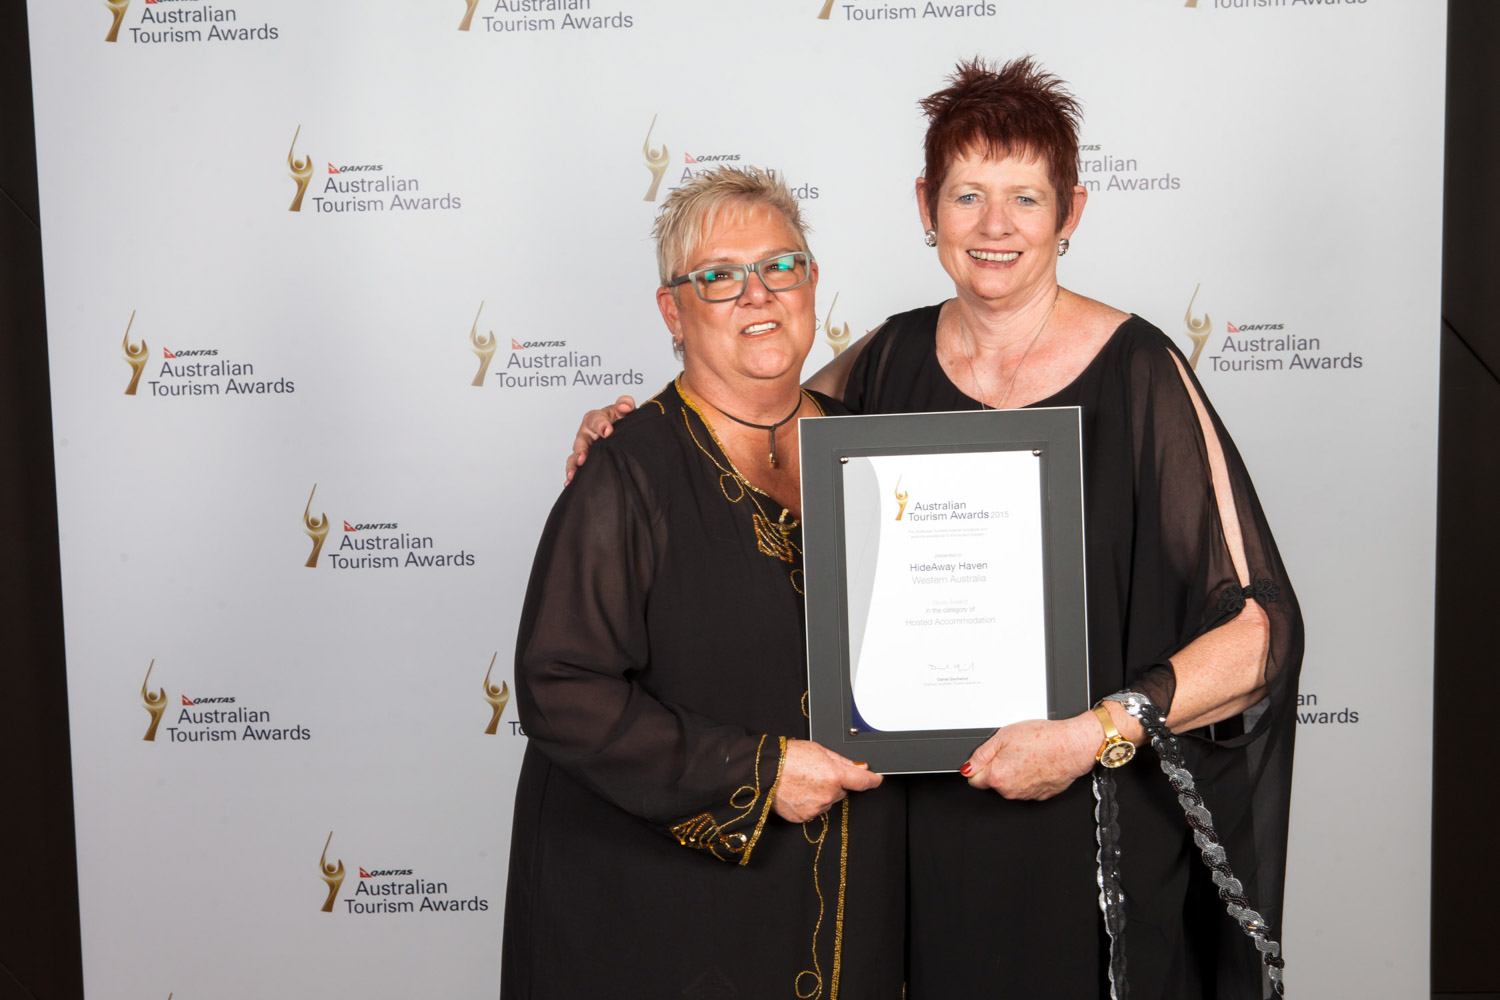 SILVER for HideAway Haven